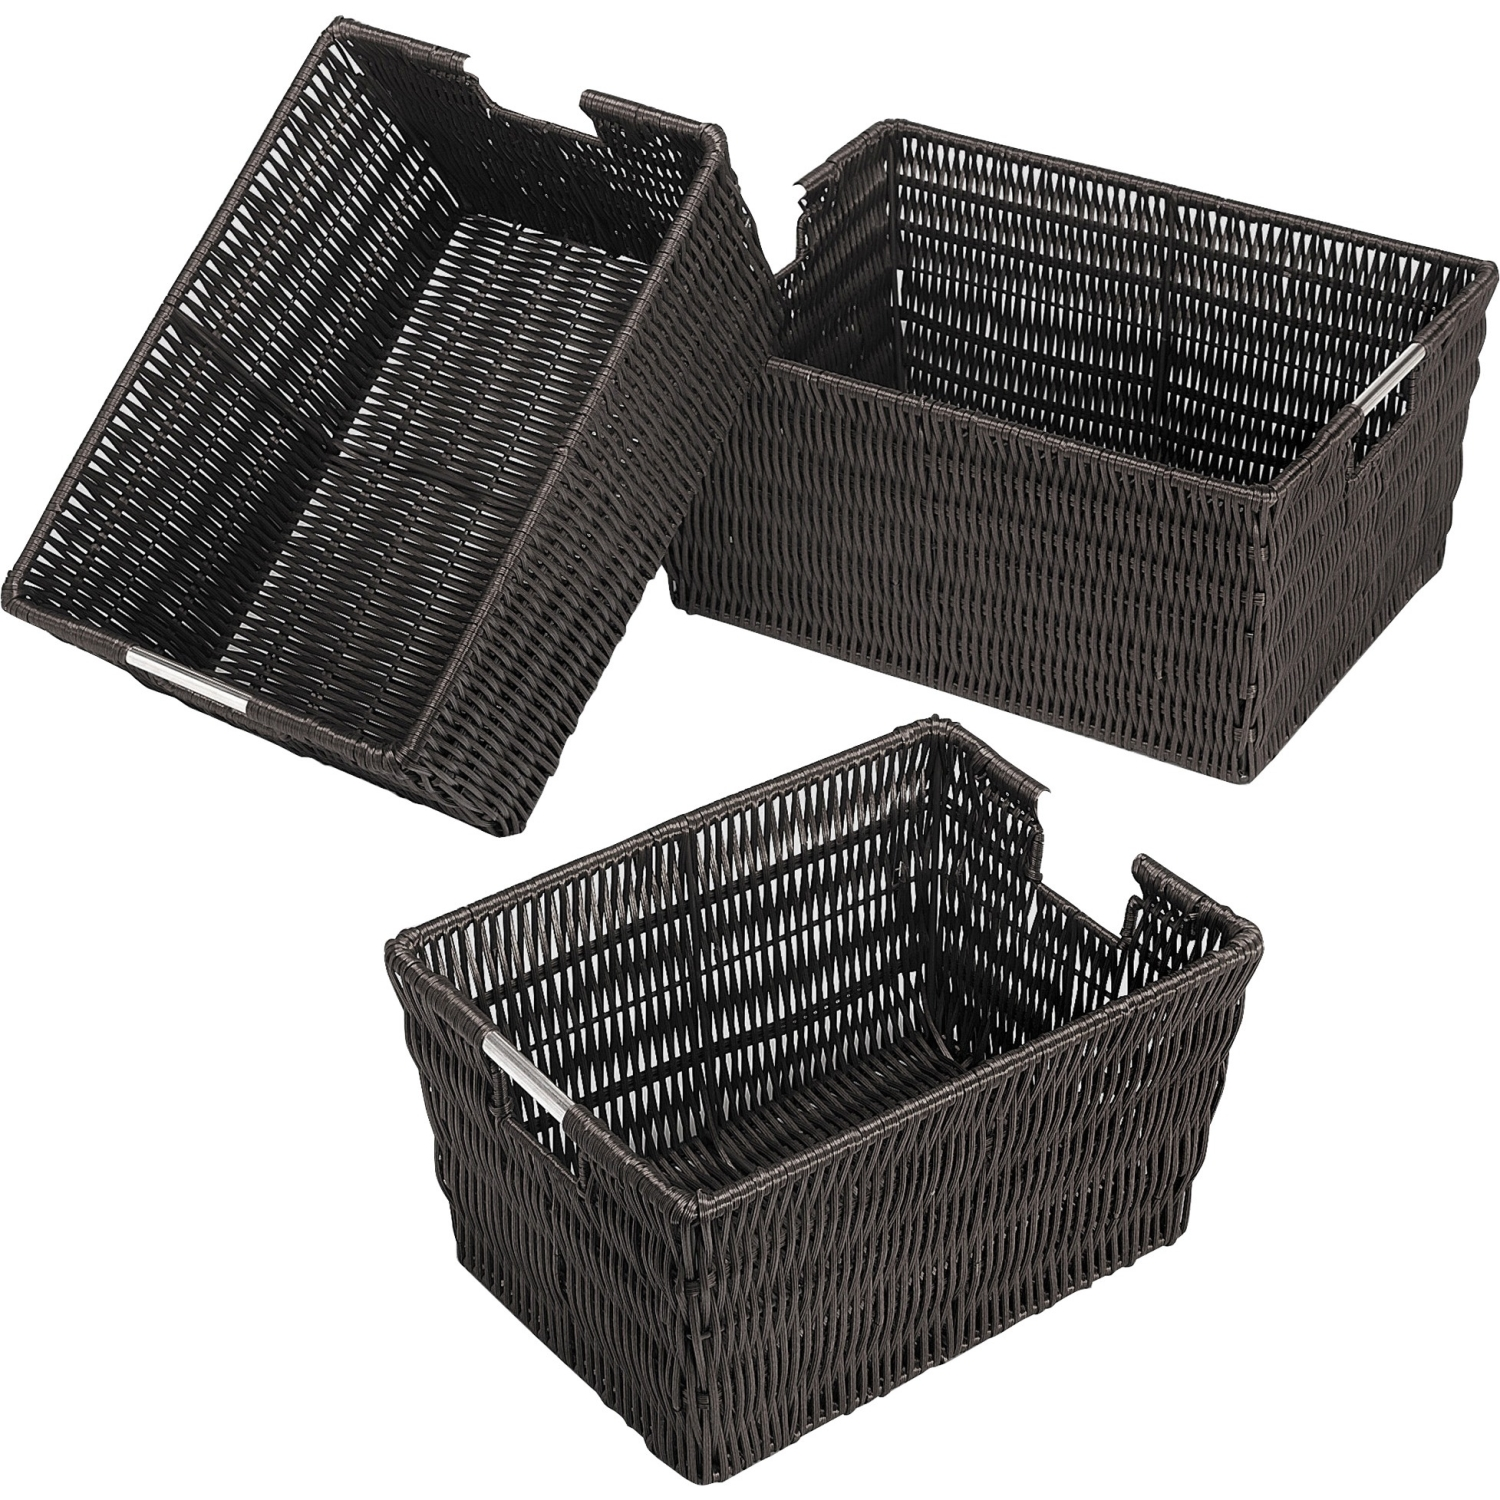 Whitmor Rattique Storage Baskets Set of 3, Multiple Colors